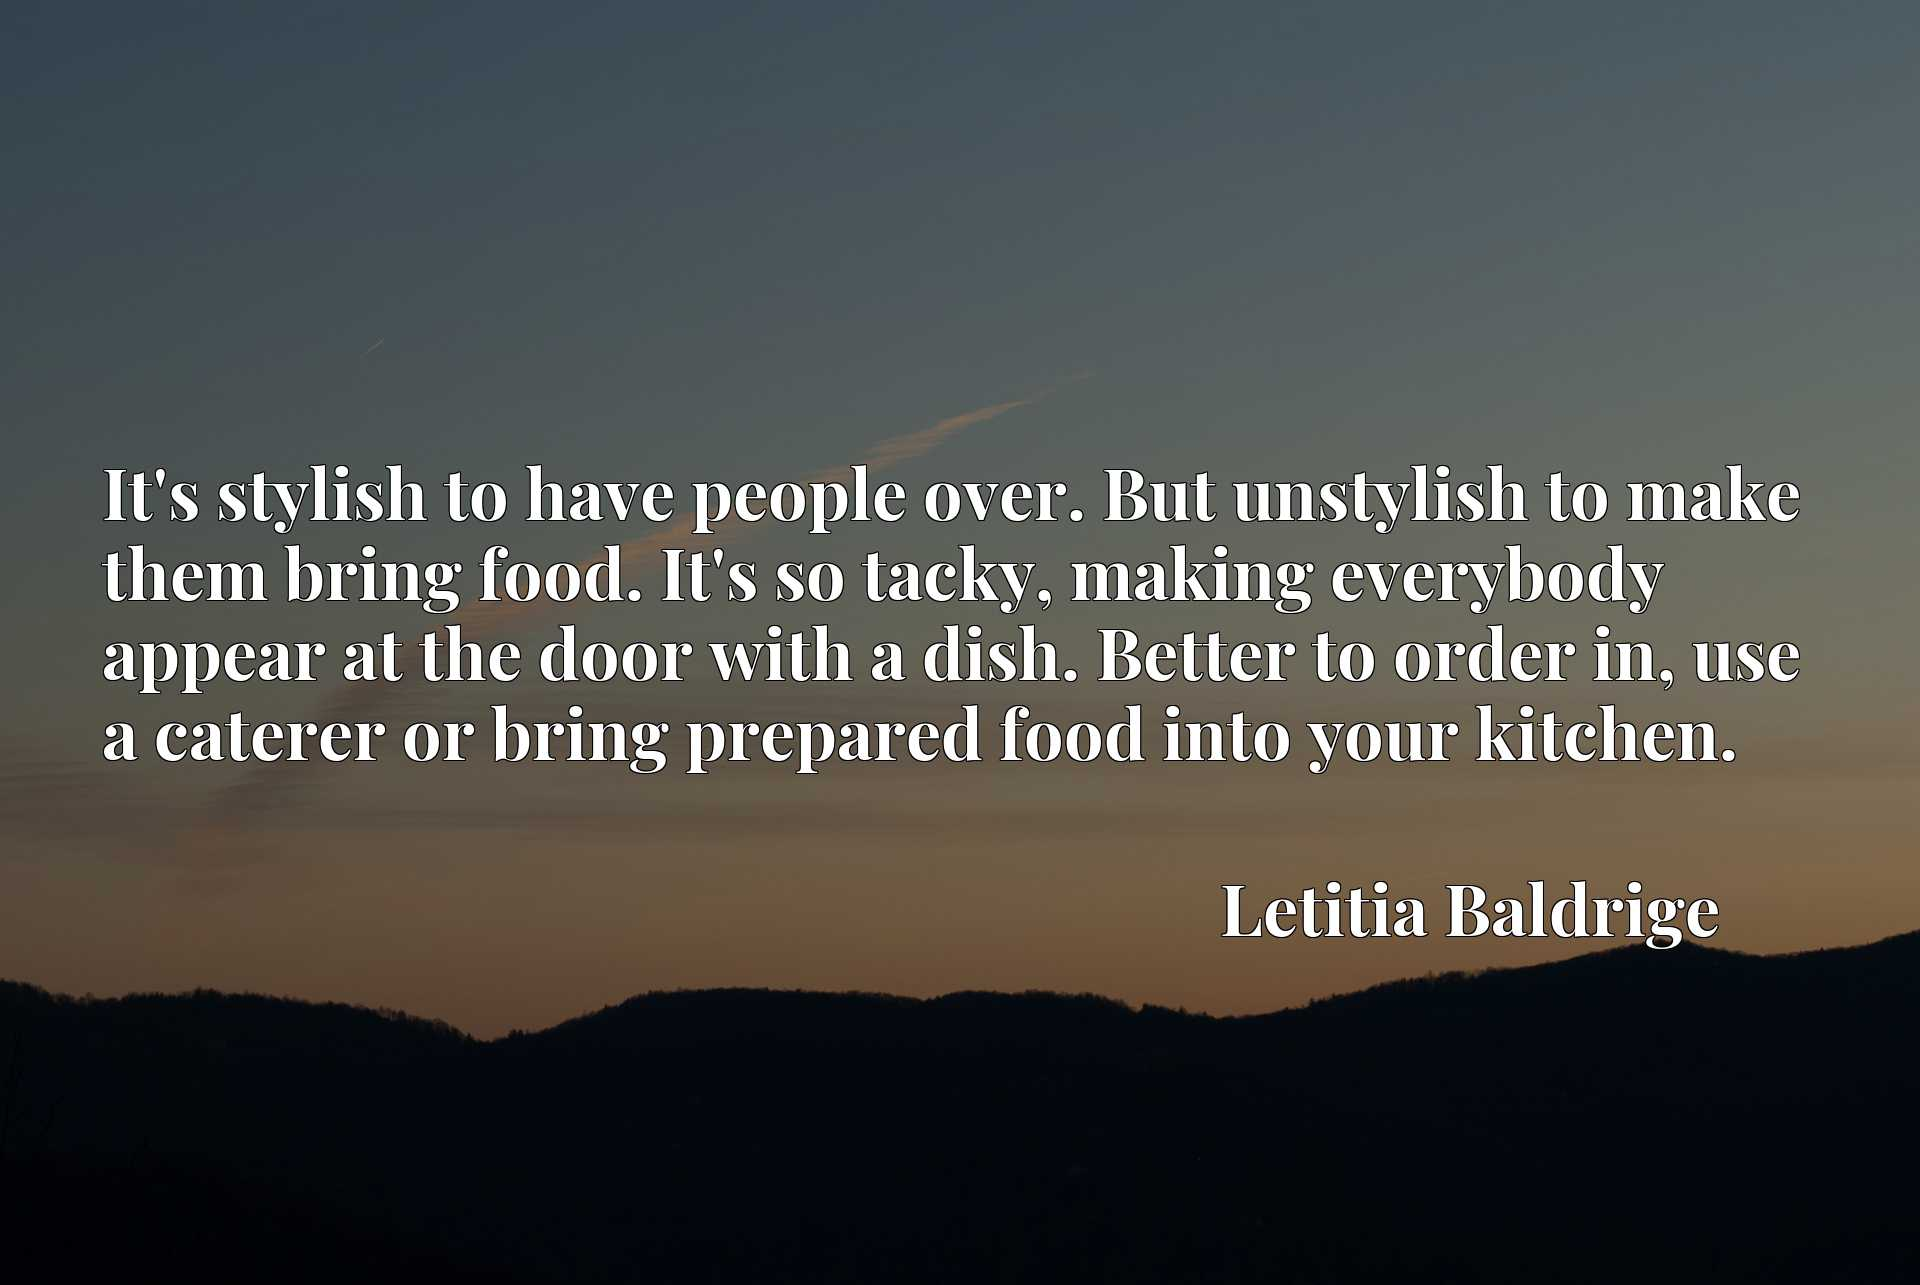 It's stylish to have people over. But unstylish to make them bring food. It's so tacky, making everybody appear at the door with a dish. Better to order in, use a caterer or bring prepared food into your kitchen.